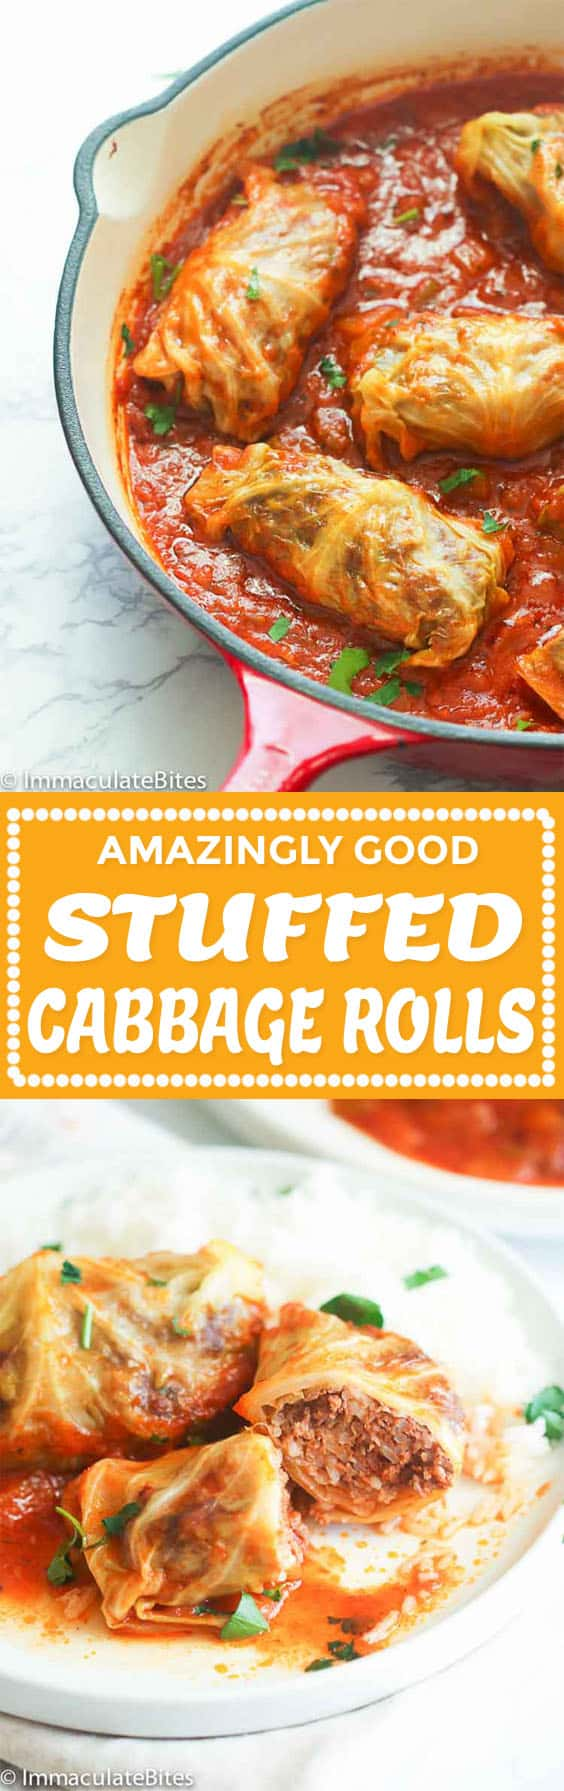 Struffed Cabbage Rolls